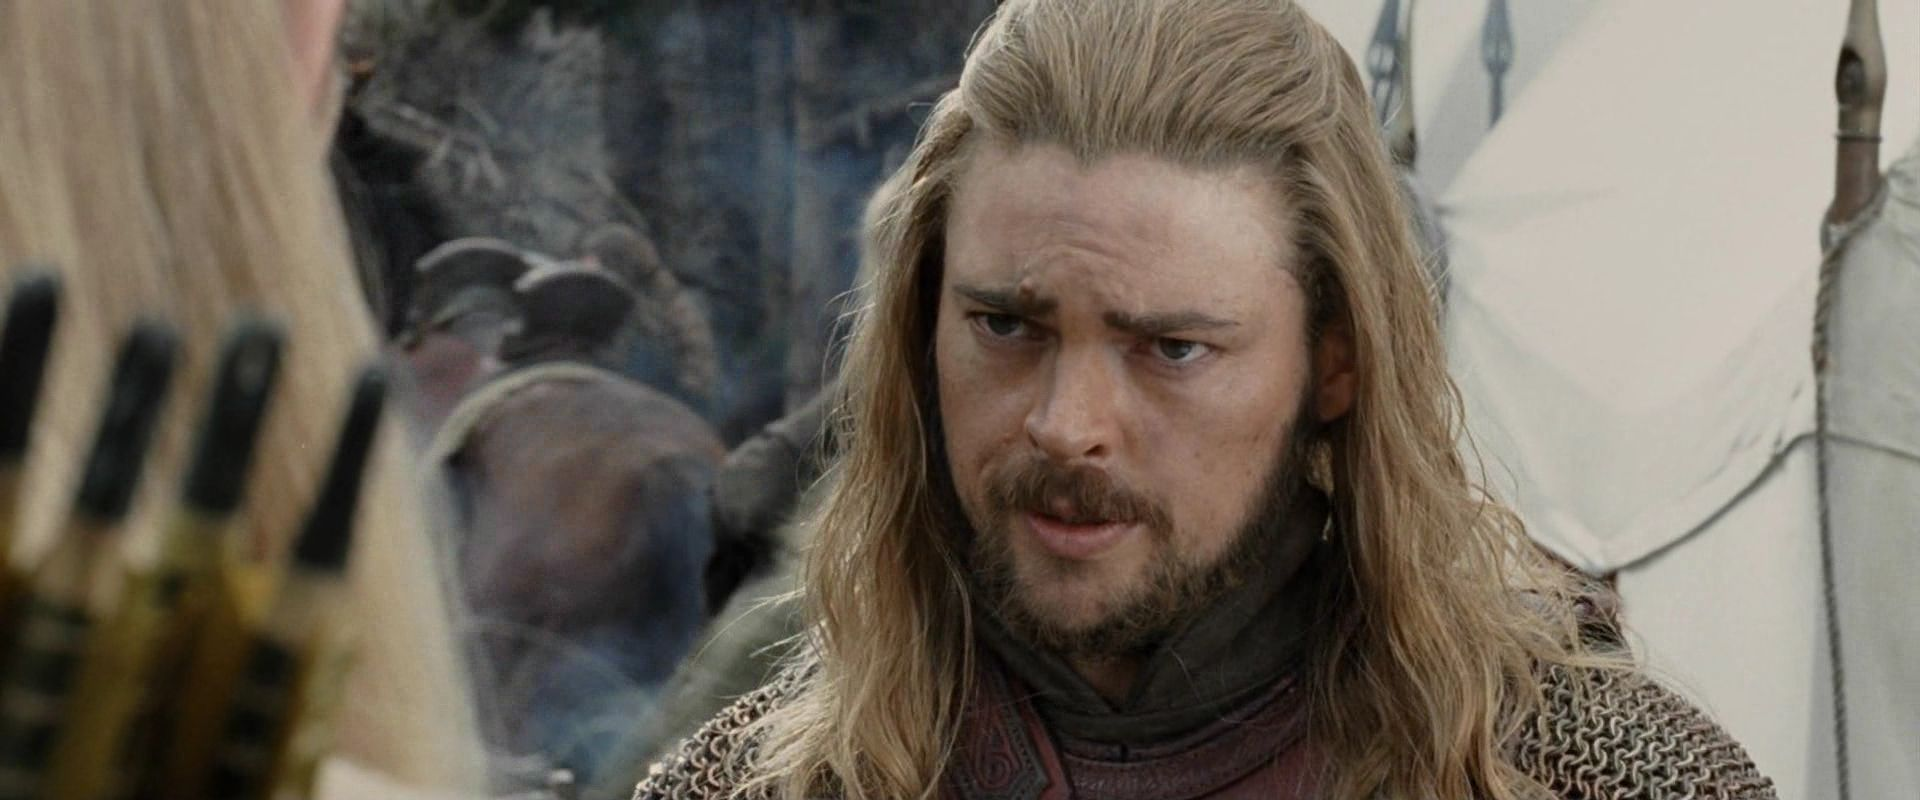 karl urban new zealander actor on movie quotthe lord of the